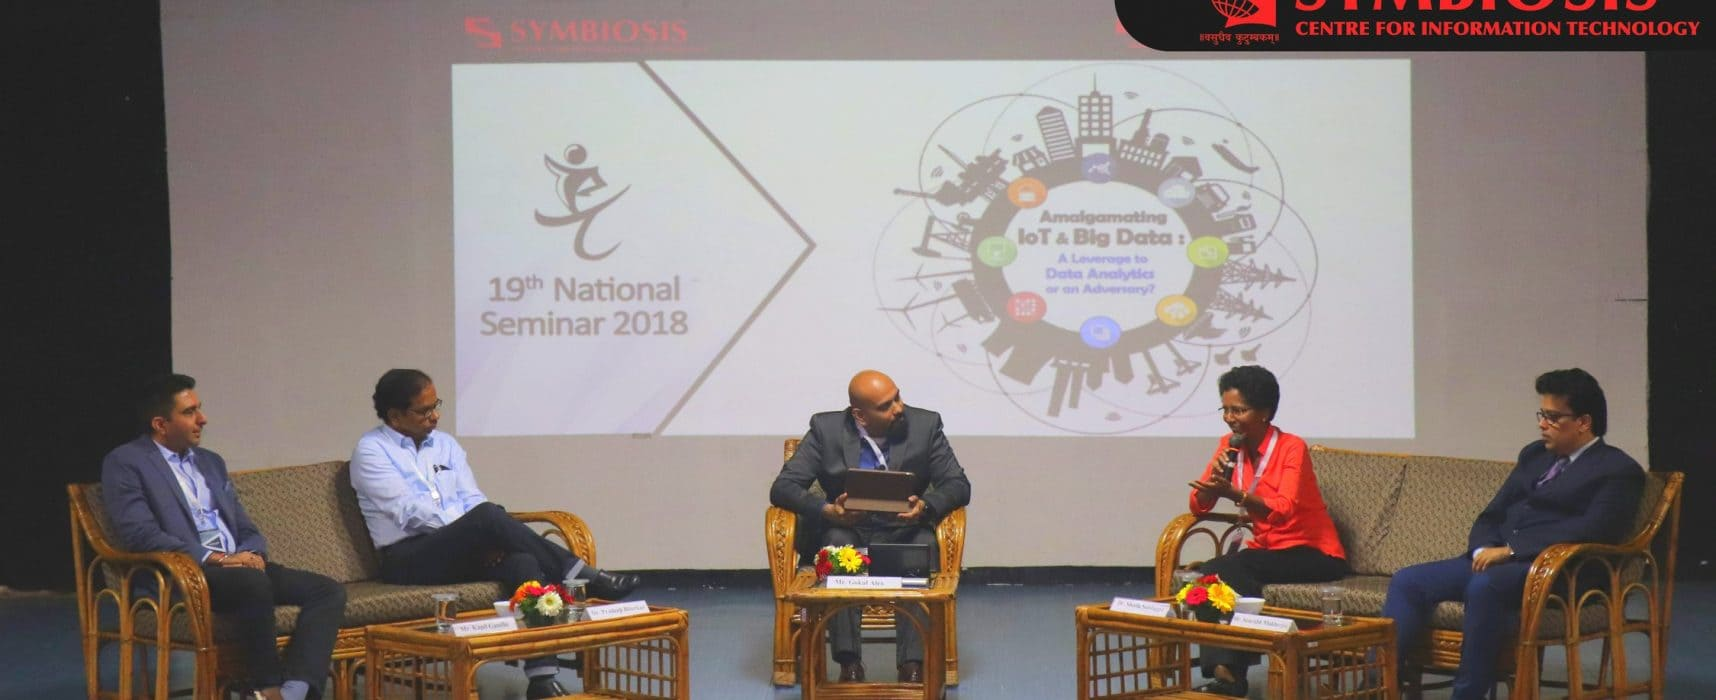 19th National Seminar 2018